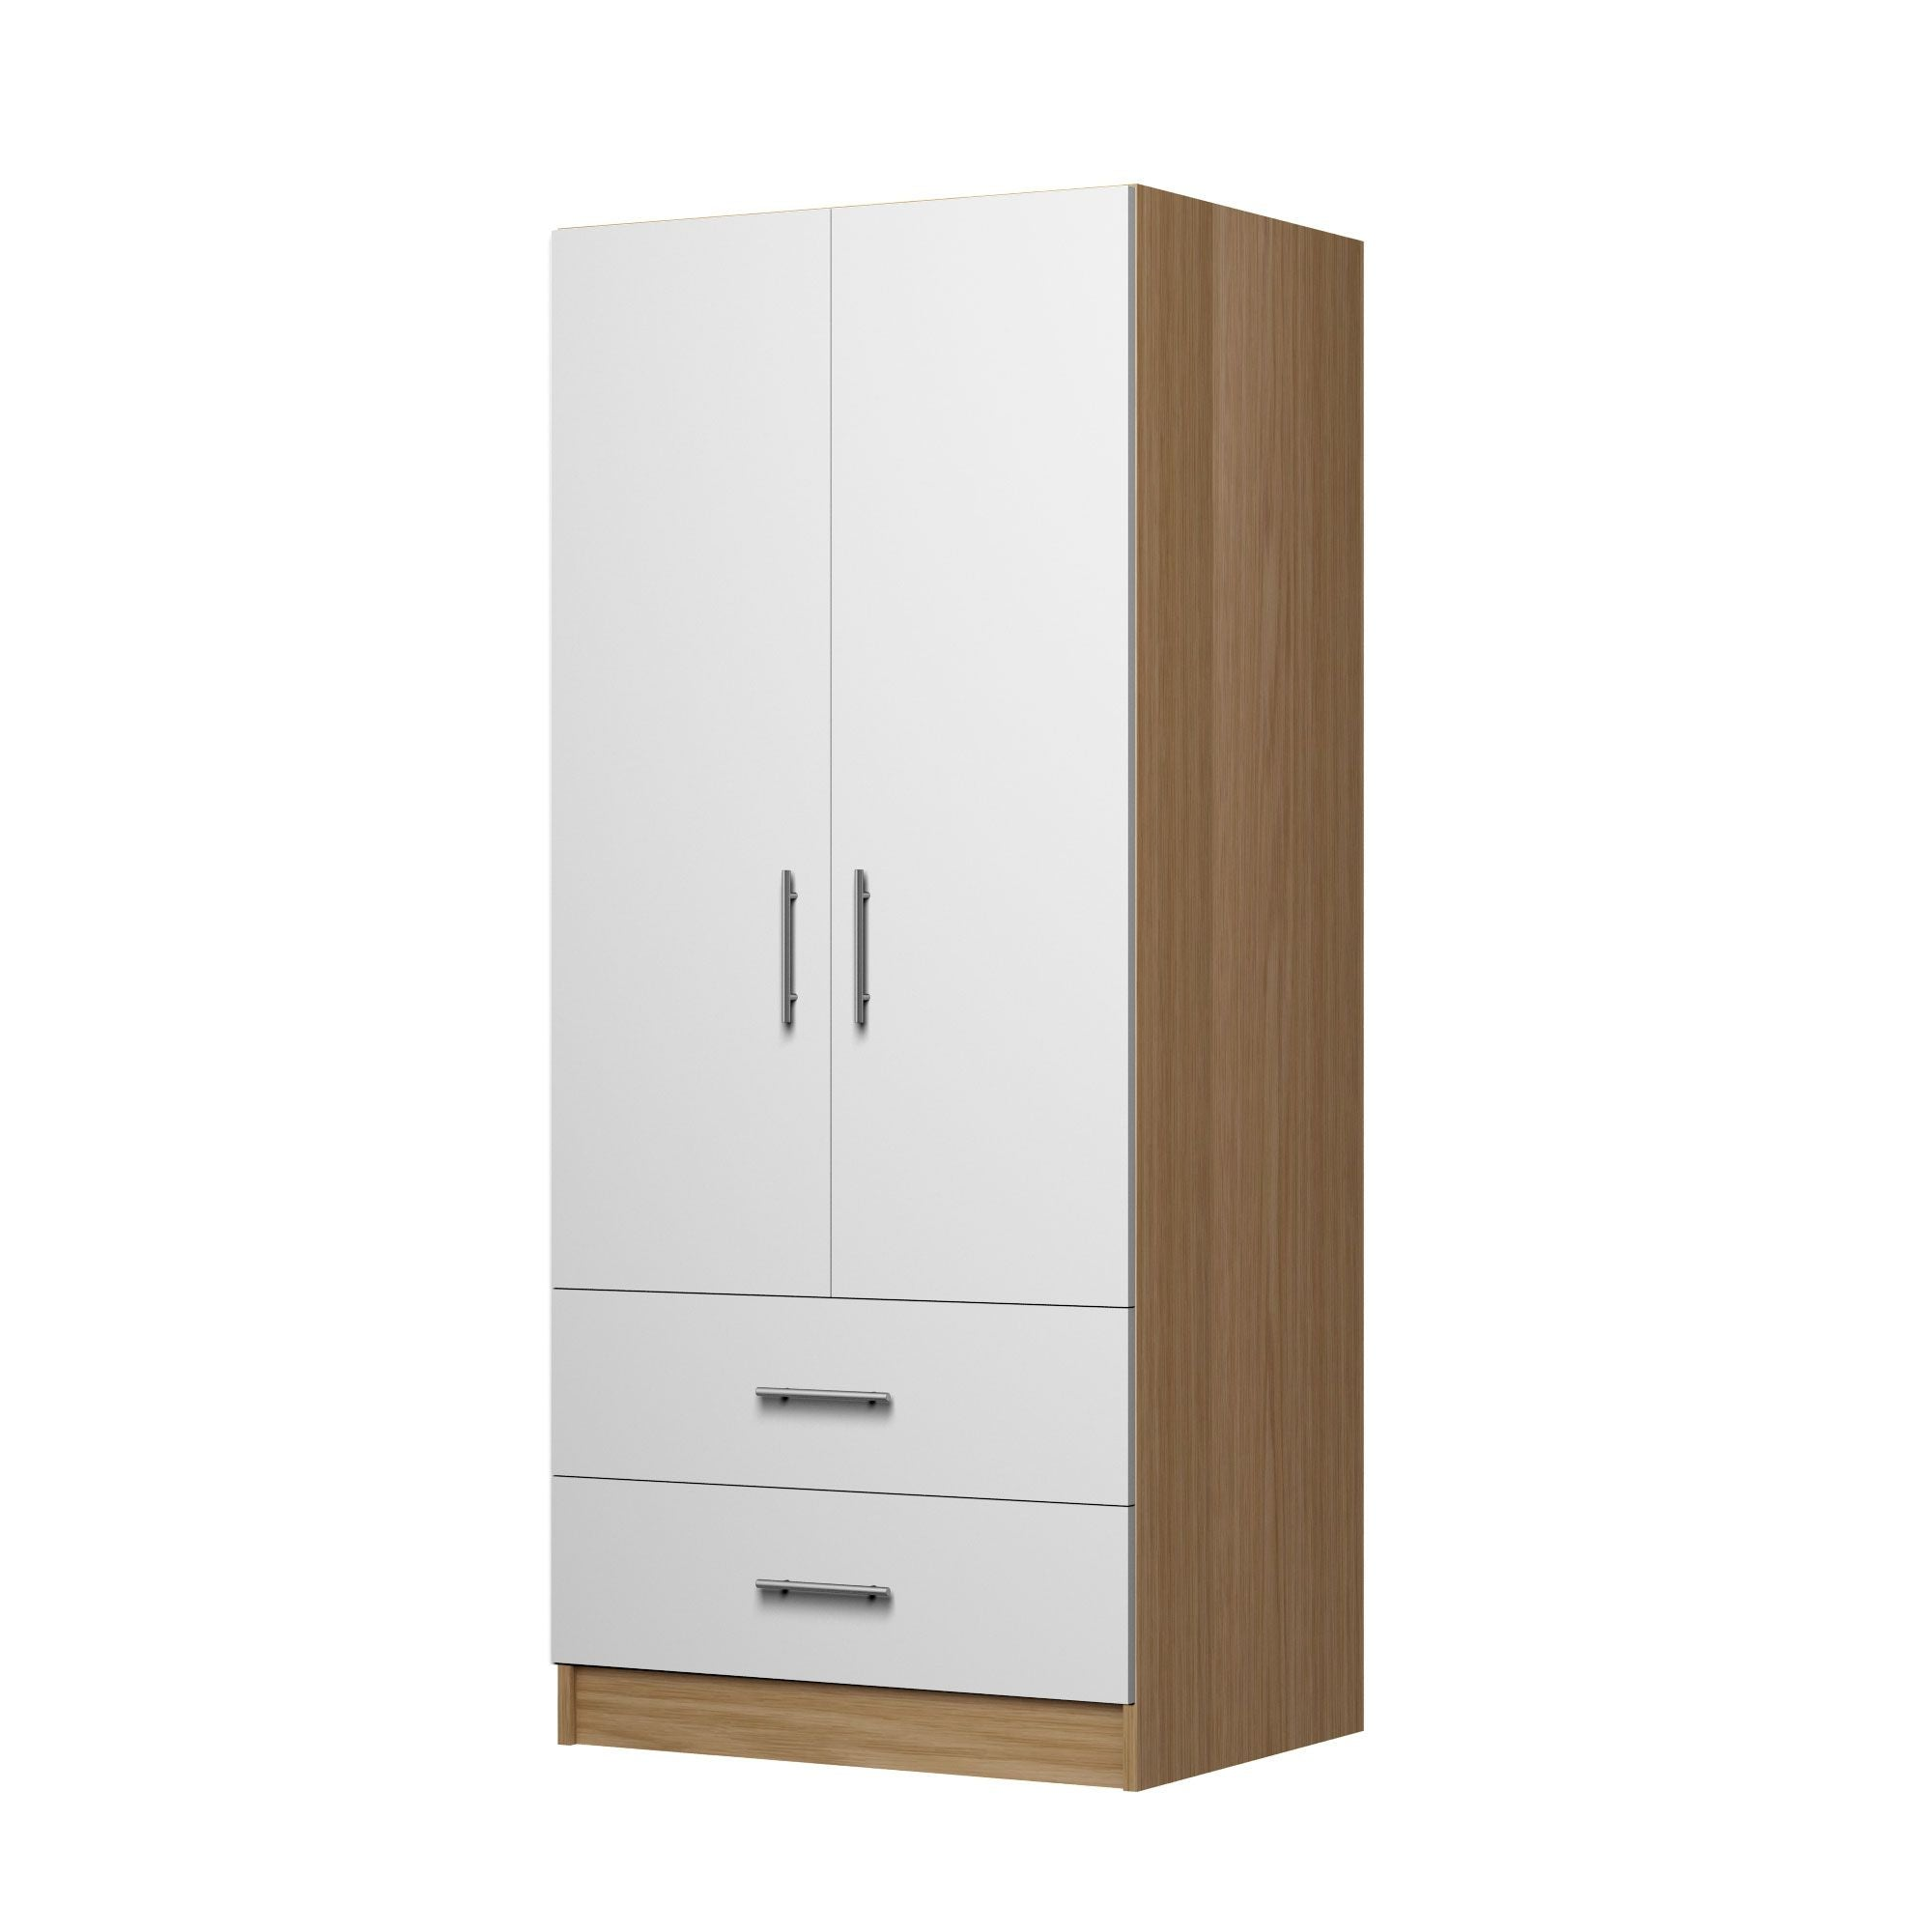 2 Door Wardrobe with 2 Drawers